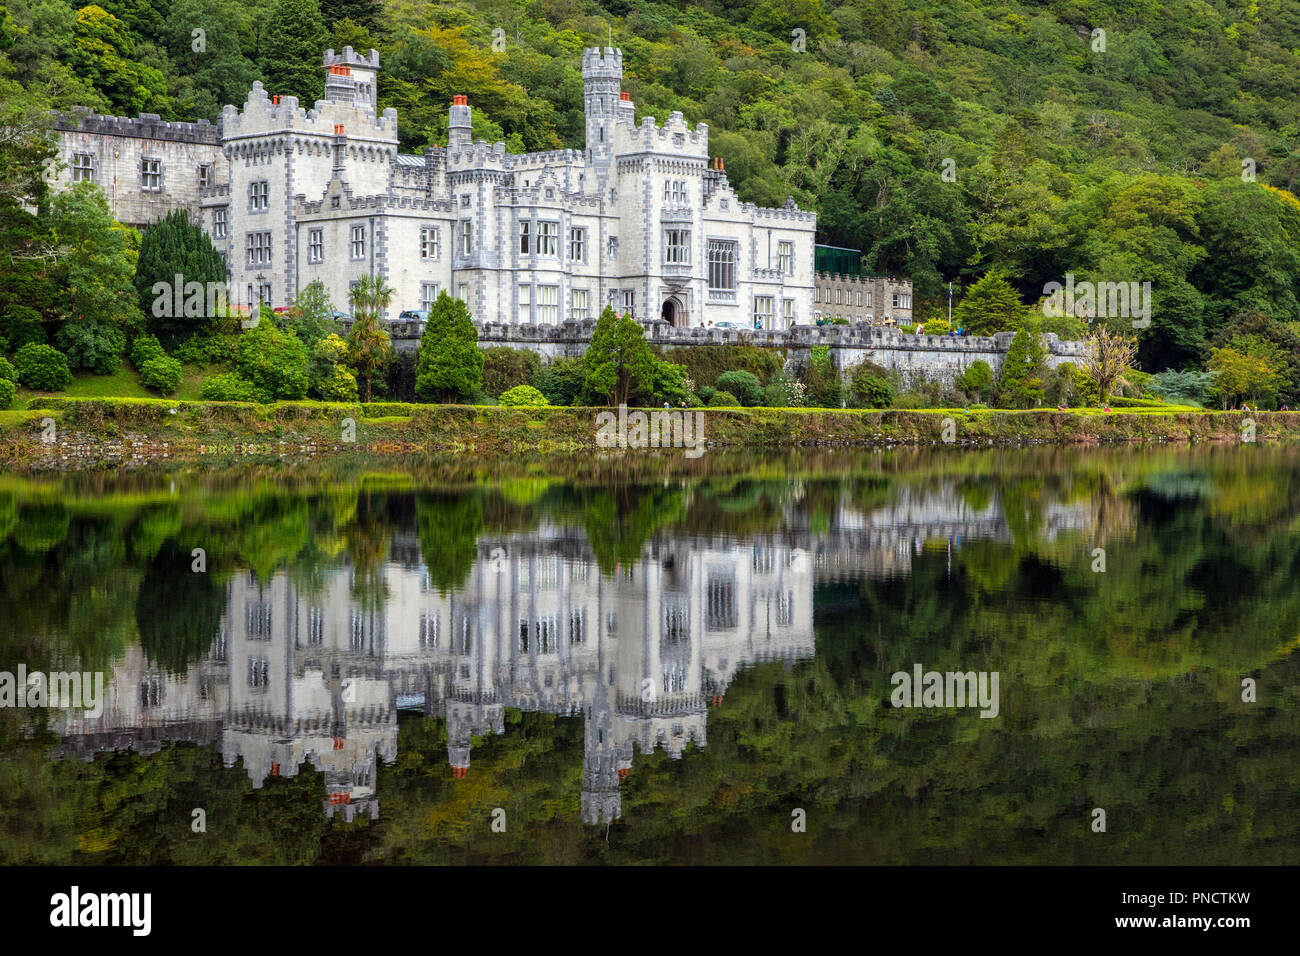 County Galway, Ireland - August 20th 2018: A view of the magnificent Kylemore Abbey - the Benedictine monastery on the grounds of Kylemore Castle in C Stock Photo